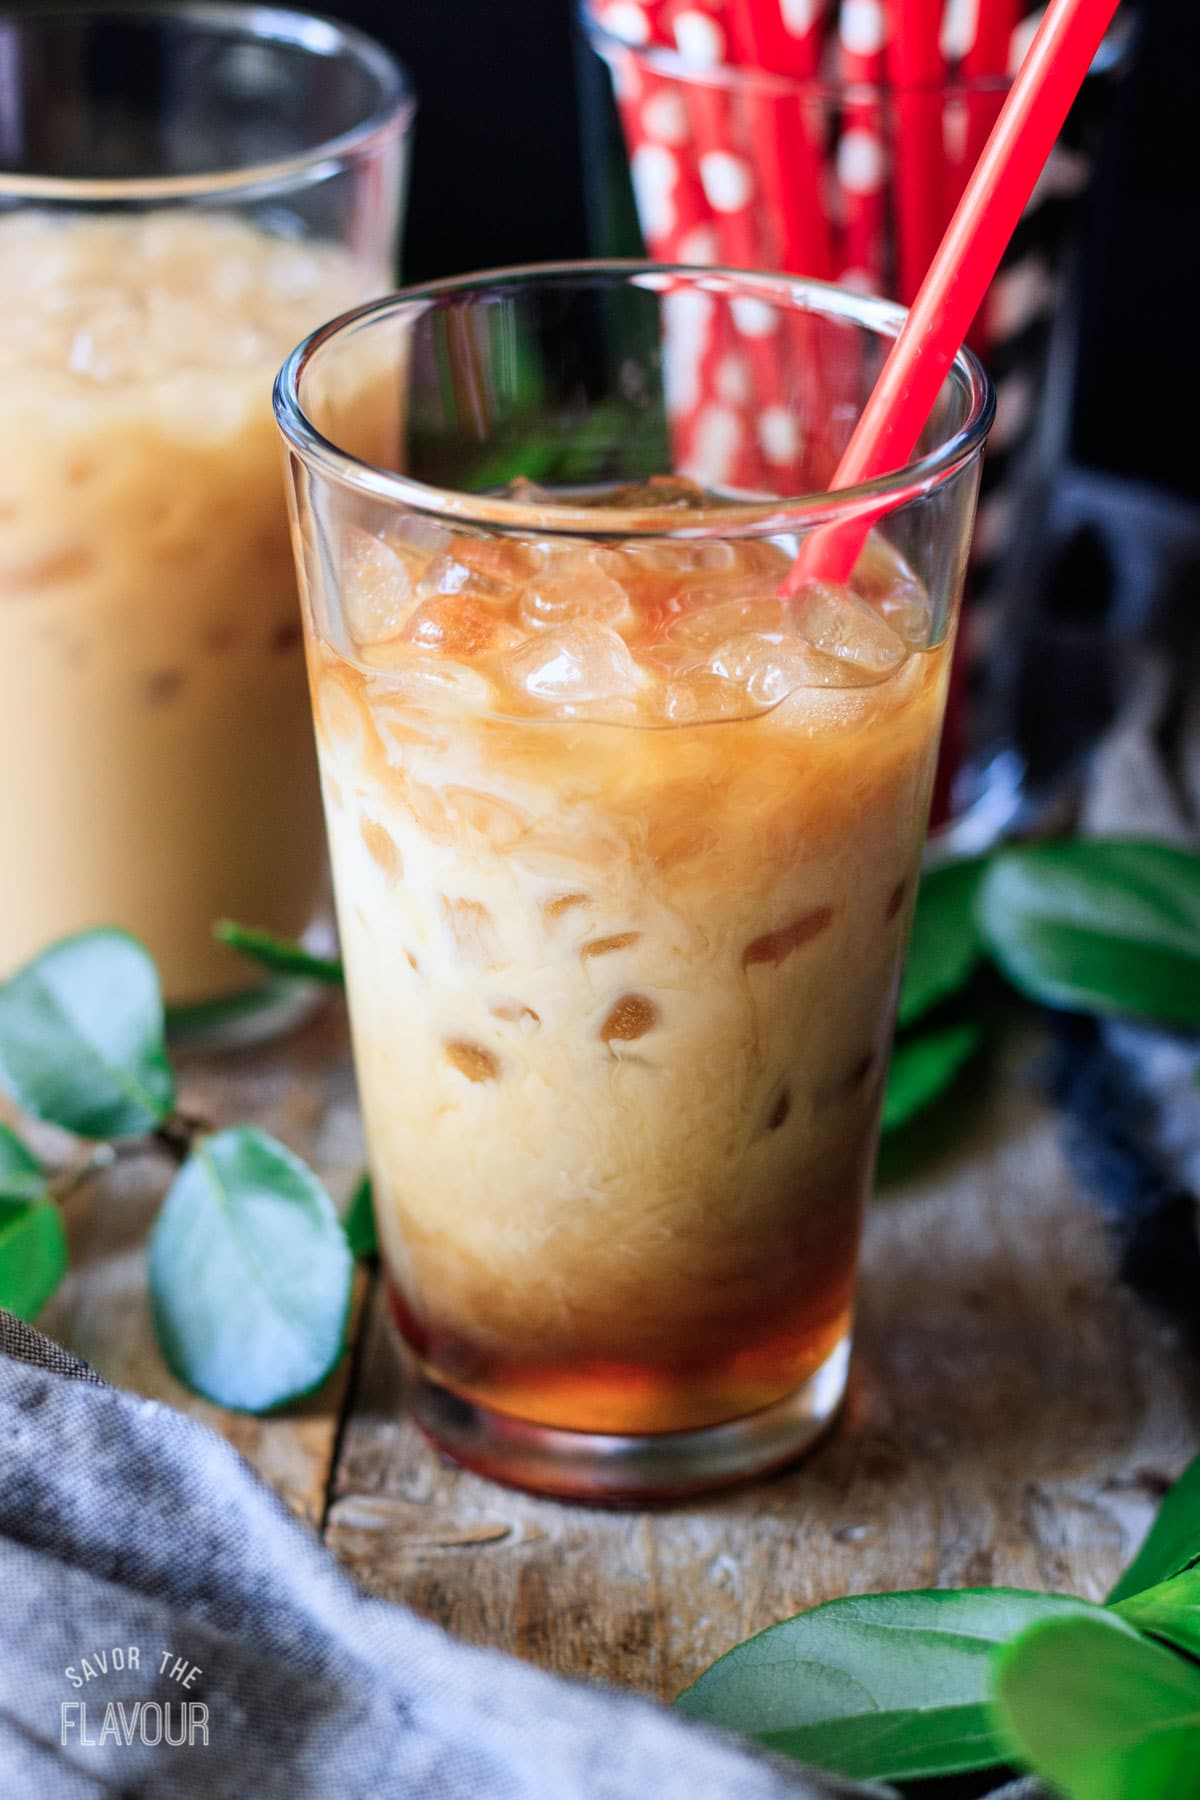 a glass of Chick-fil-A iced coffee with a red straw